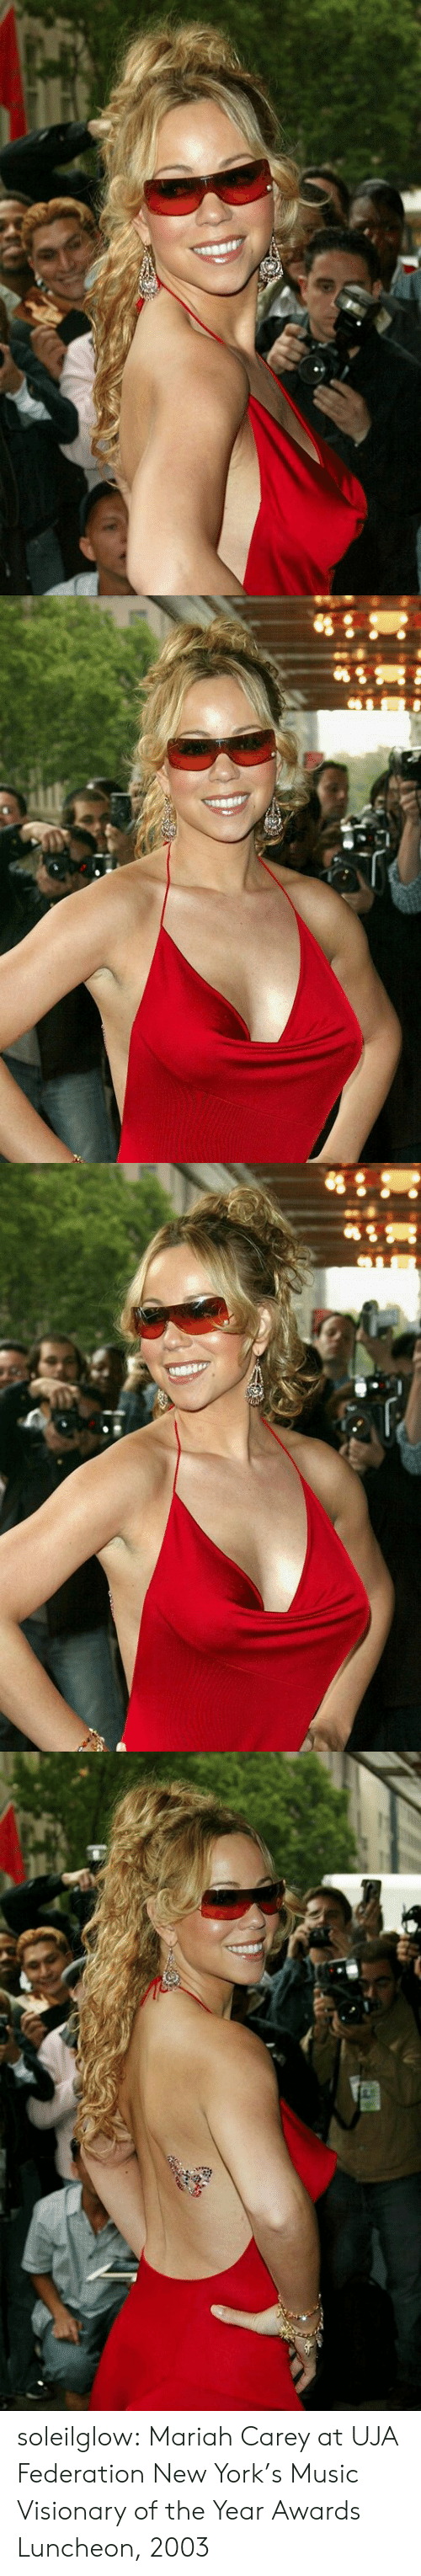 mariah carey: soleilglow: Mariah Carey at UJA Federation New York's Music Visionary of the Year Awards Luncheon, 2003